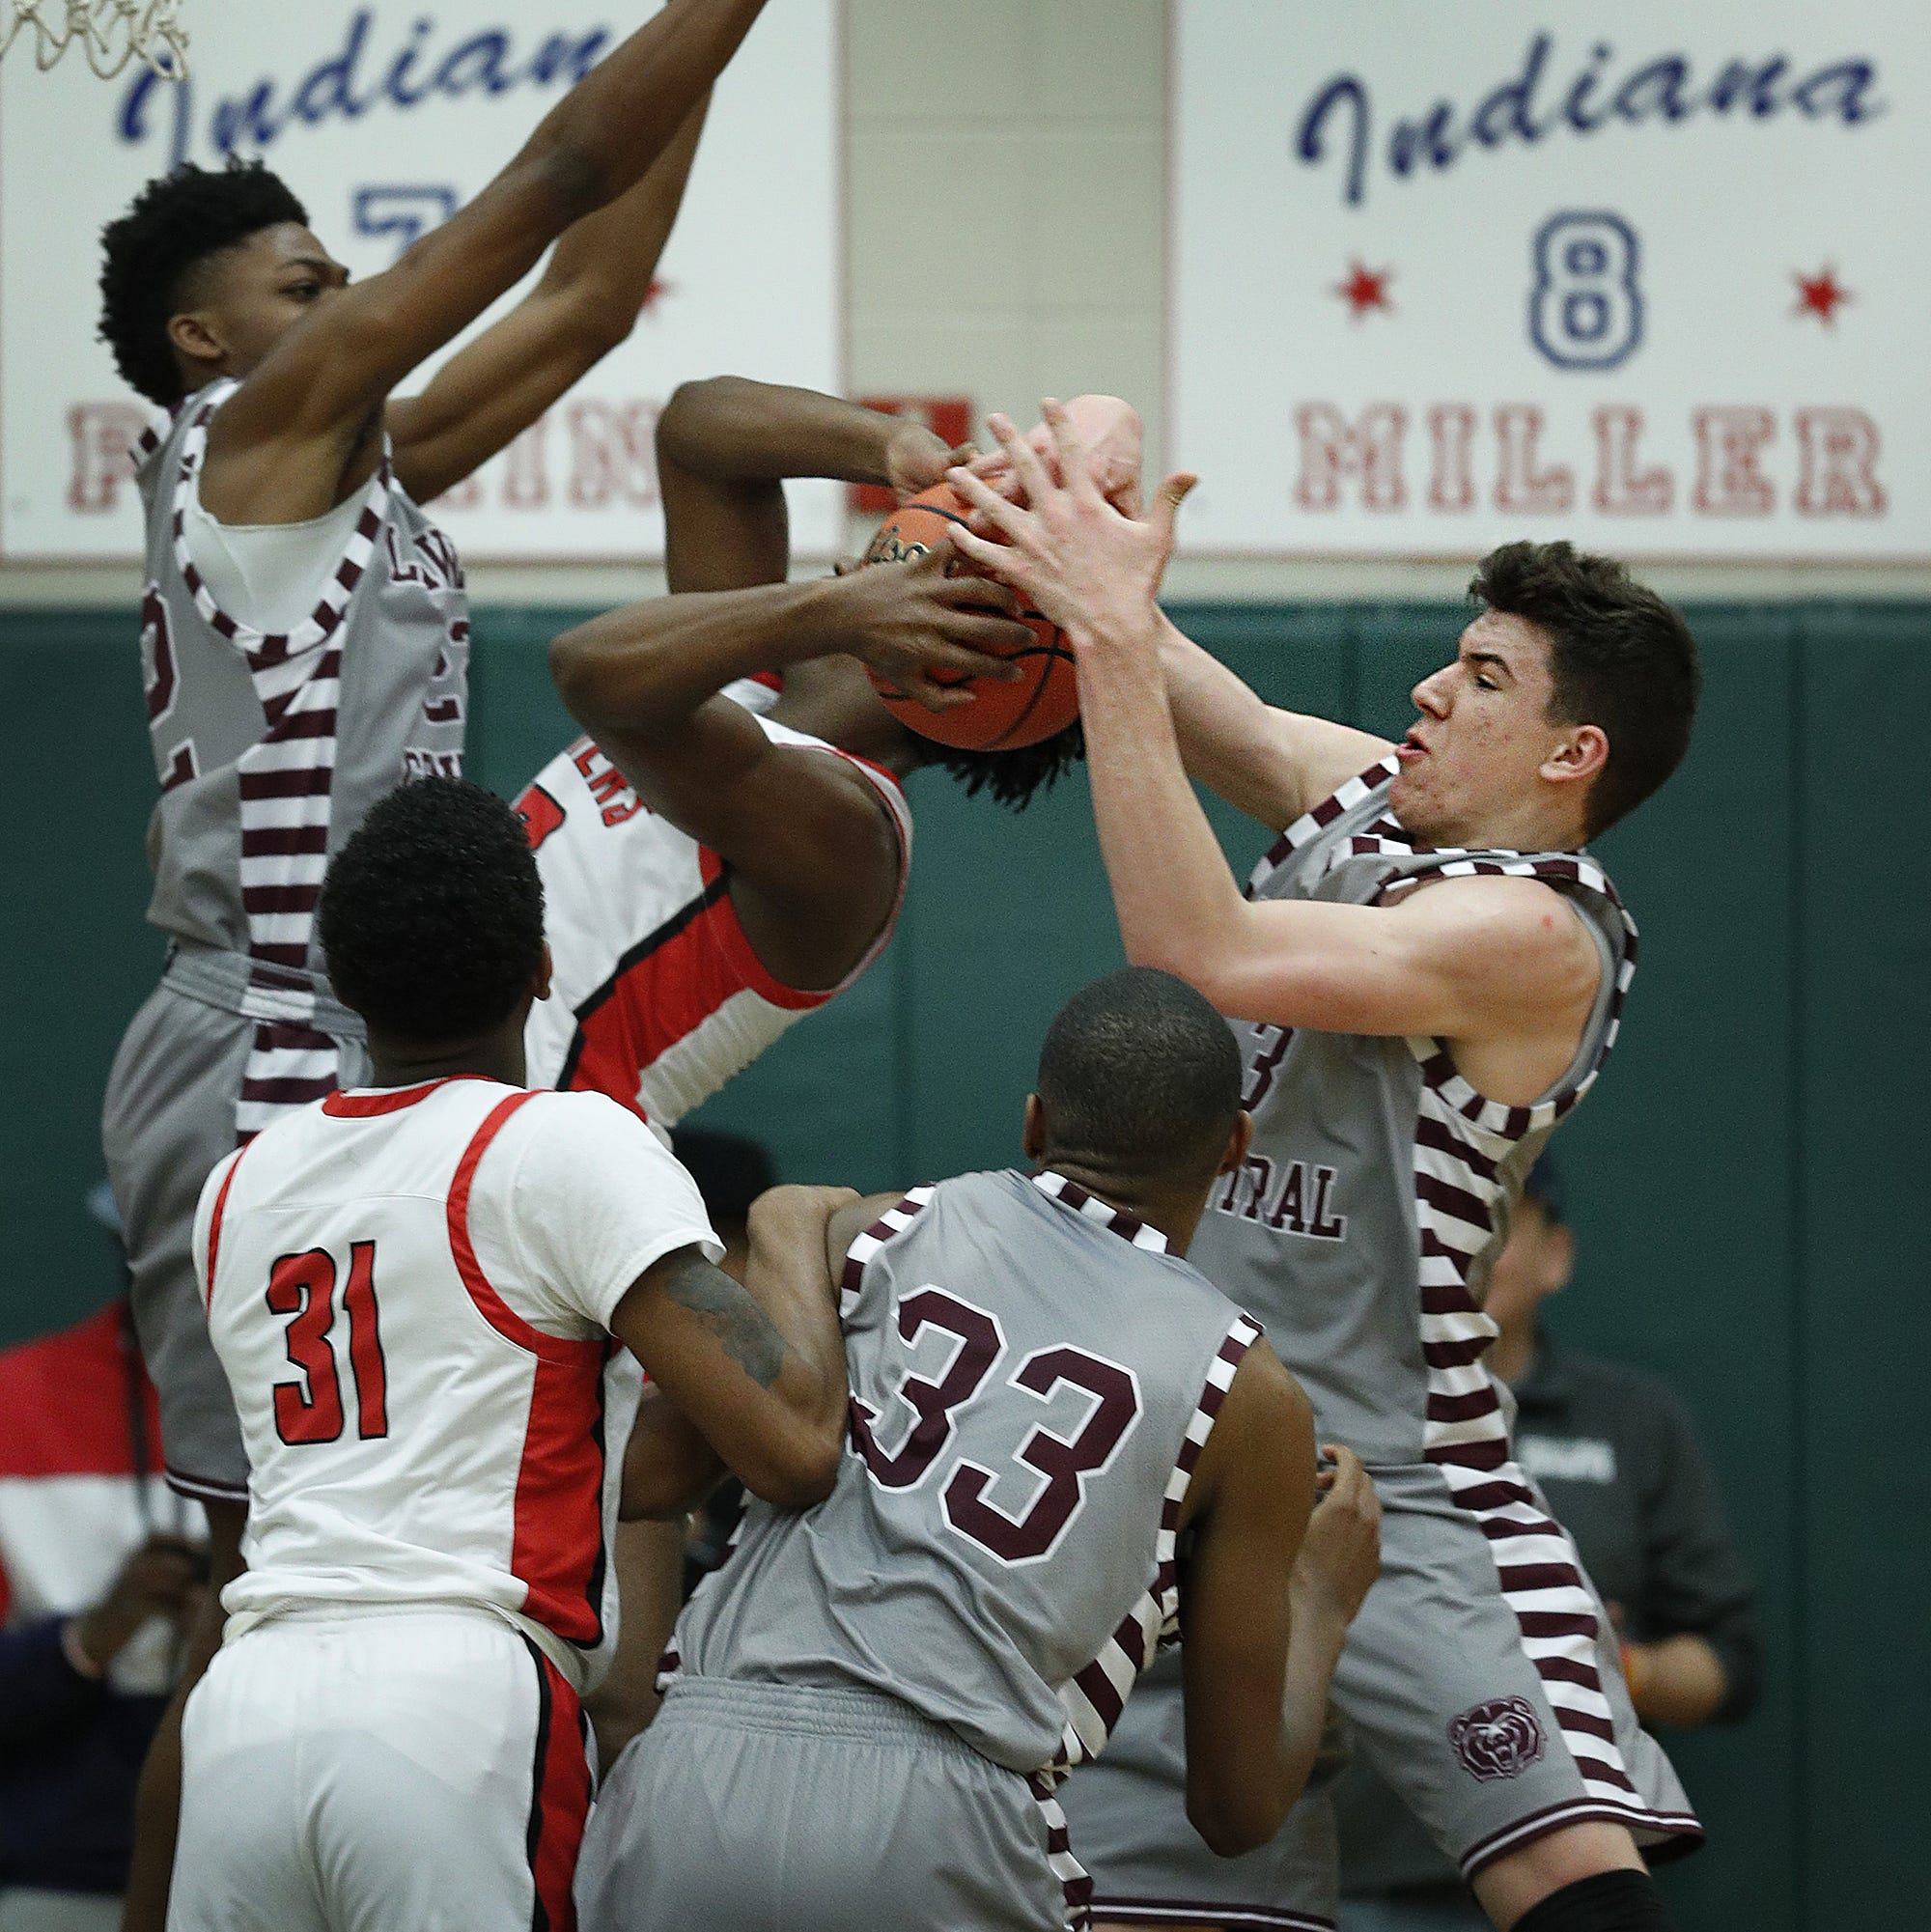 Indy-area boys basketball sectional semifinals roundup: See who will play for hardware